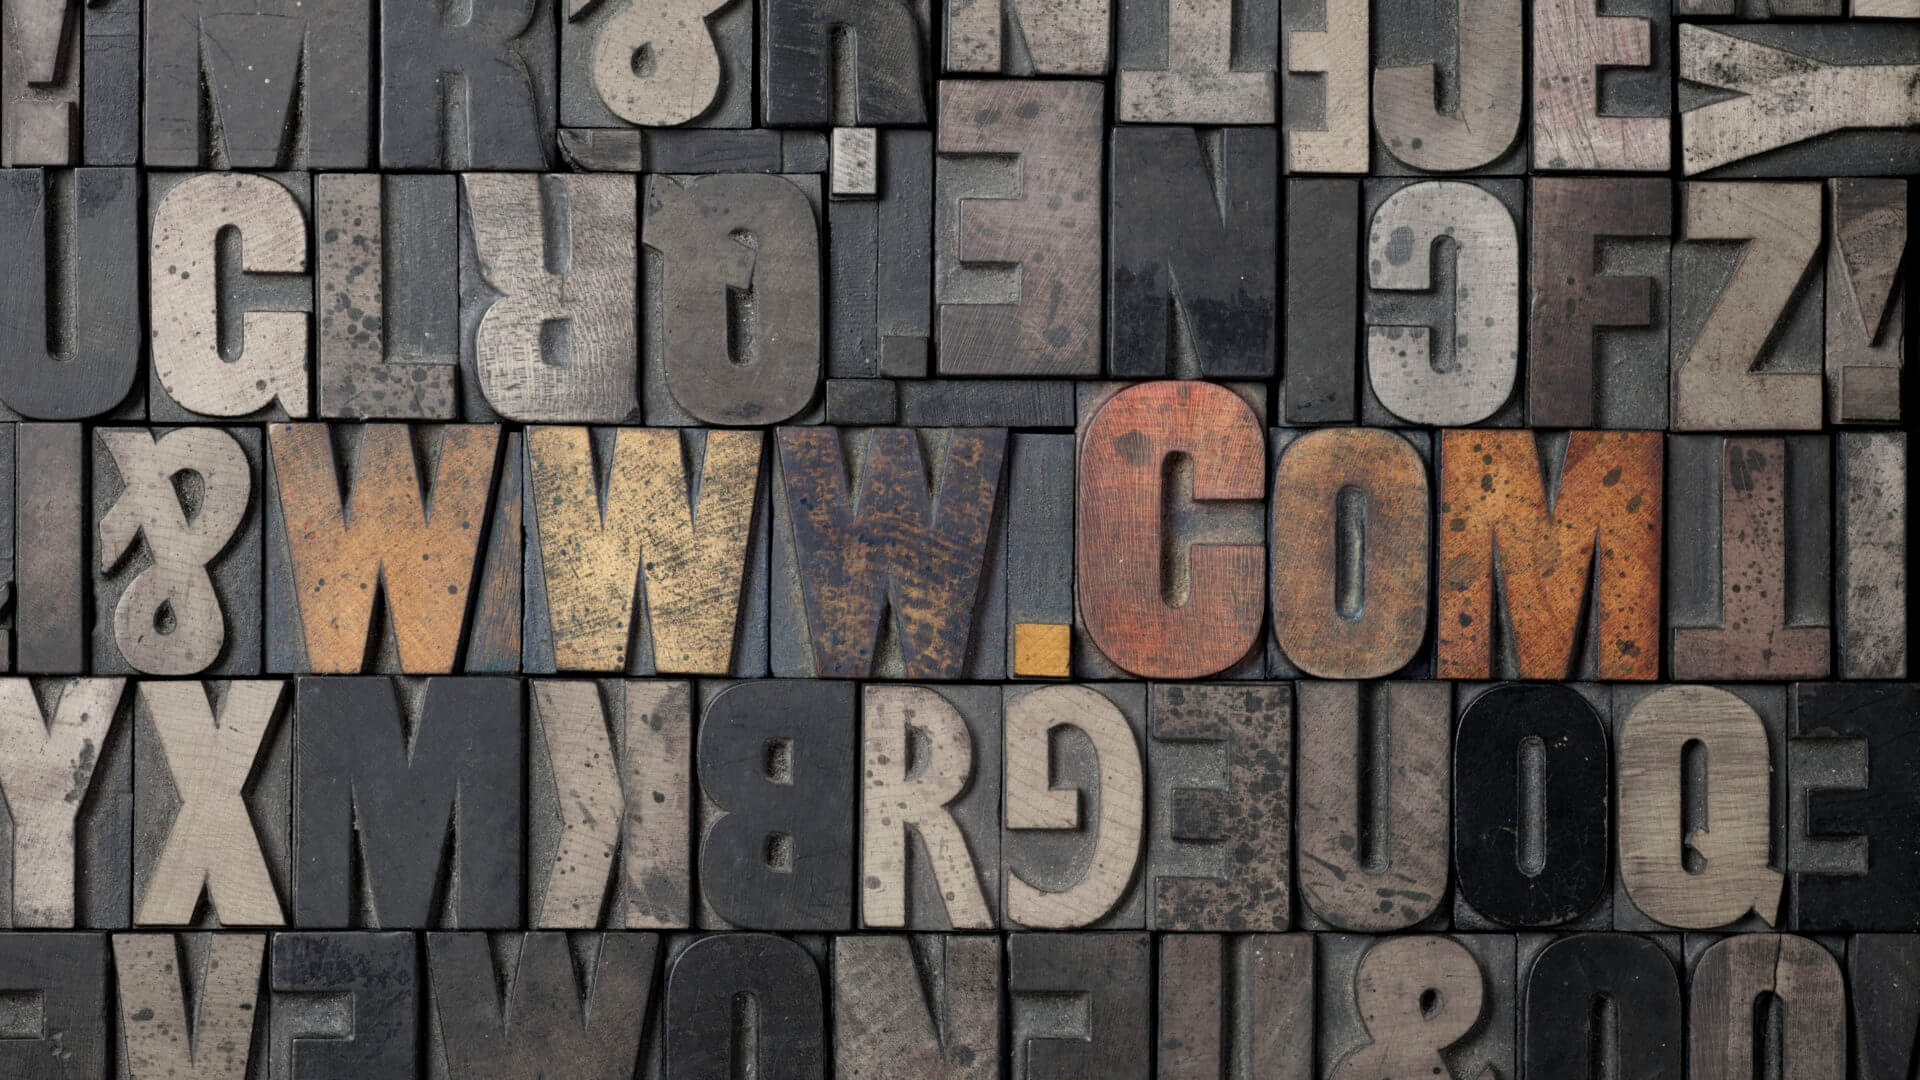 Three ways to use a domain name for business today